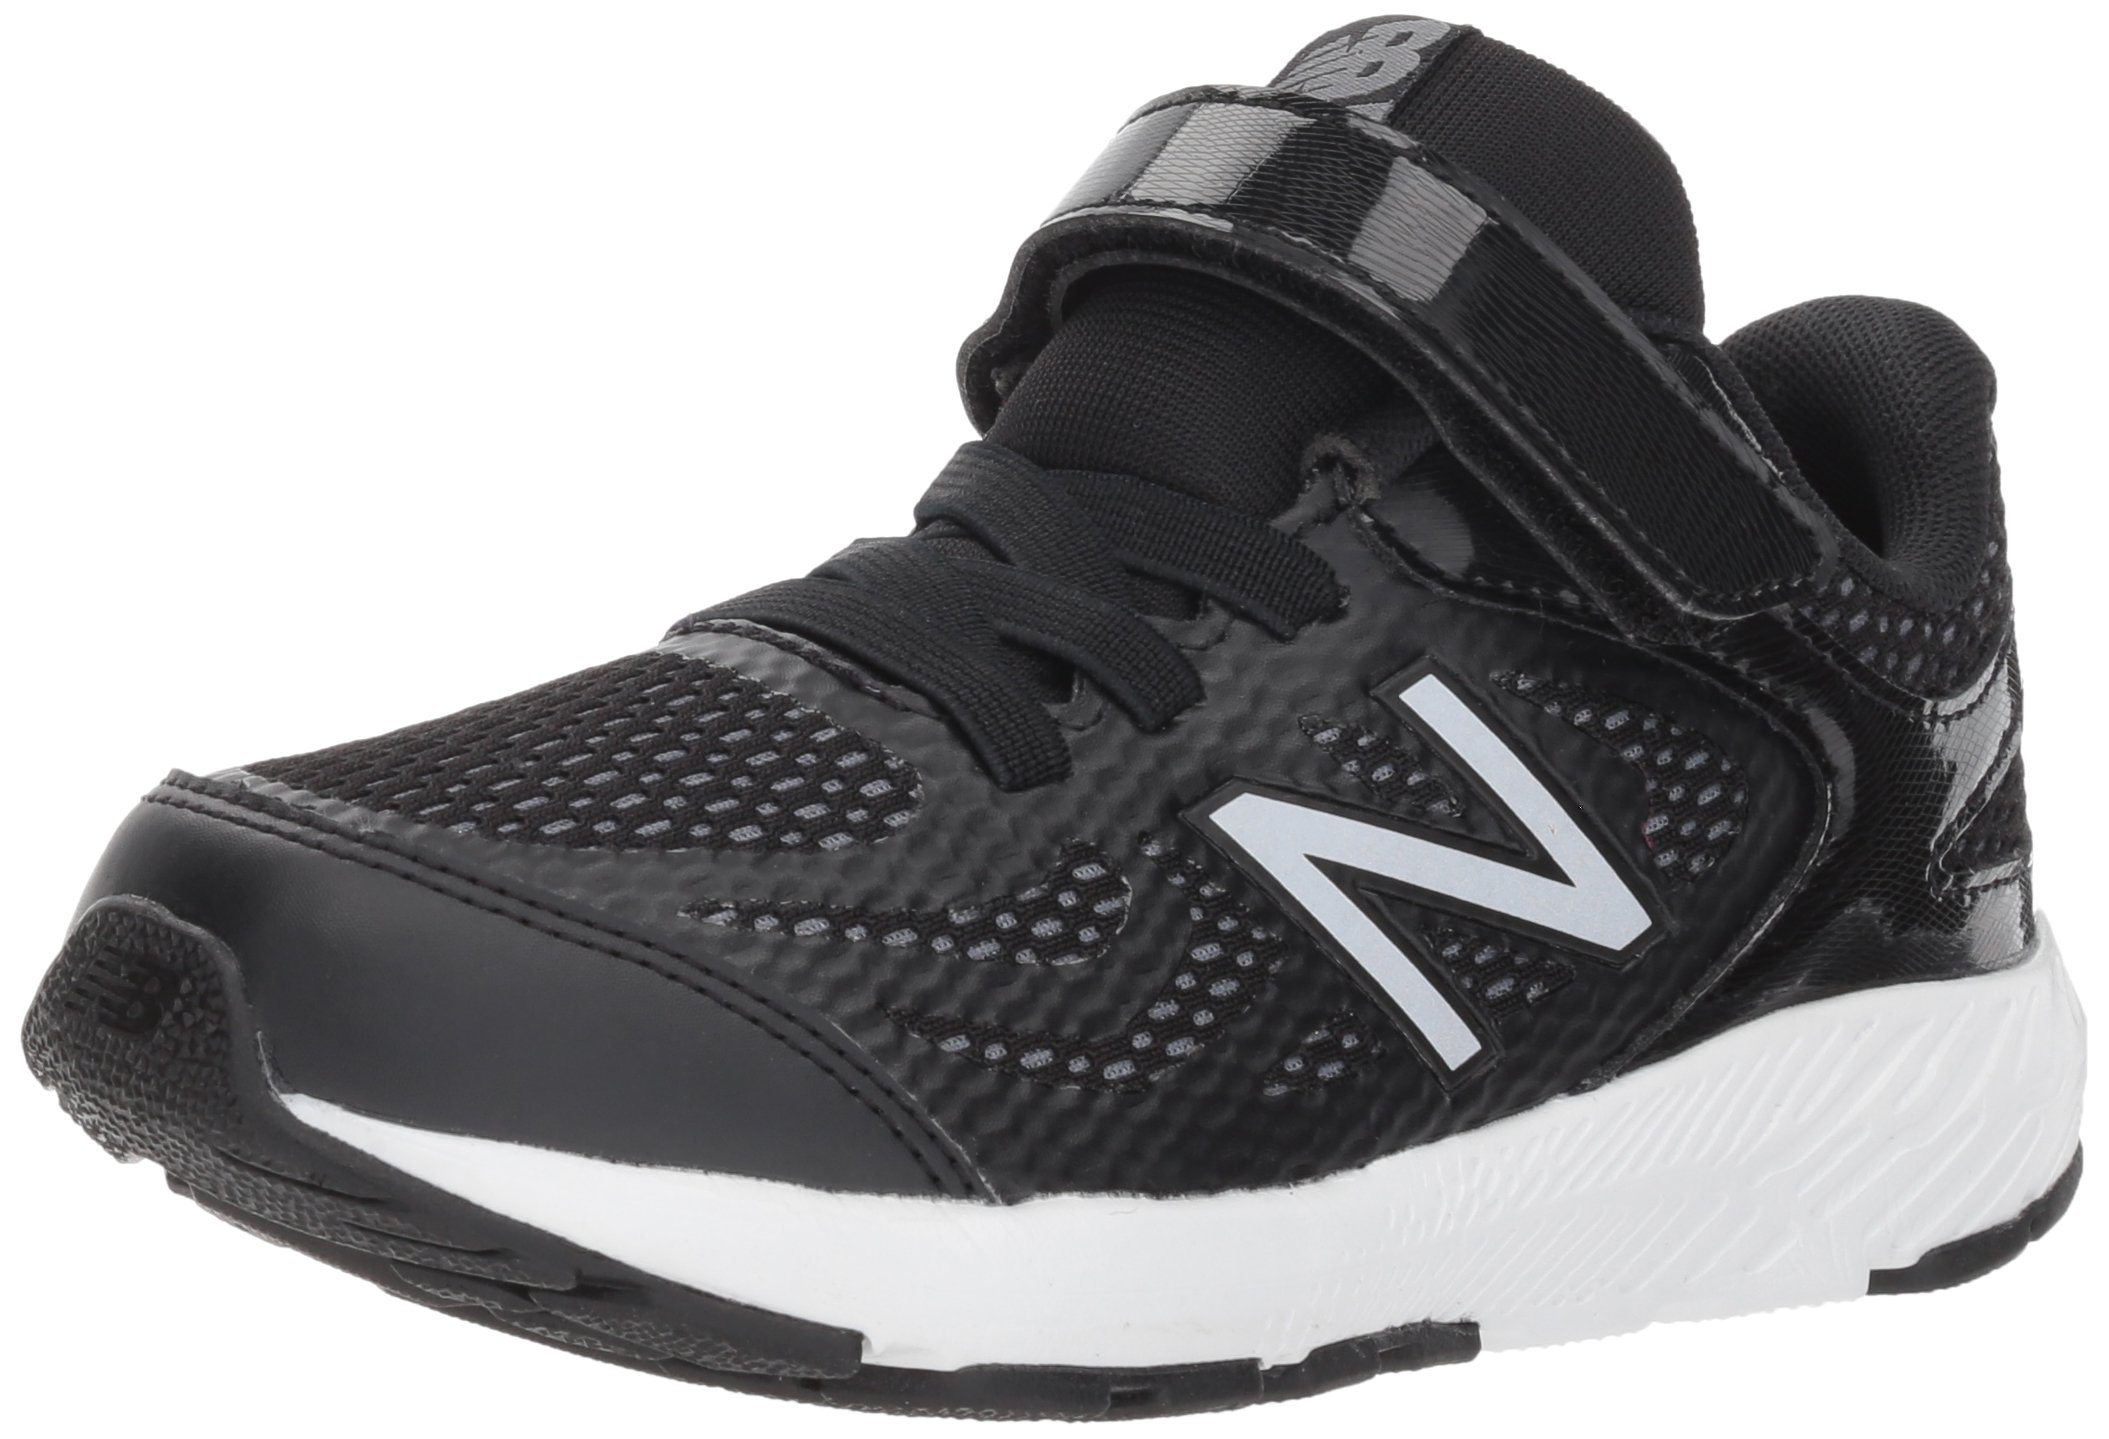 New Balance Boys' 519v1 Hook and Loop Running Shoe Black/White 2 M US Infant